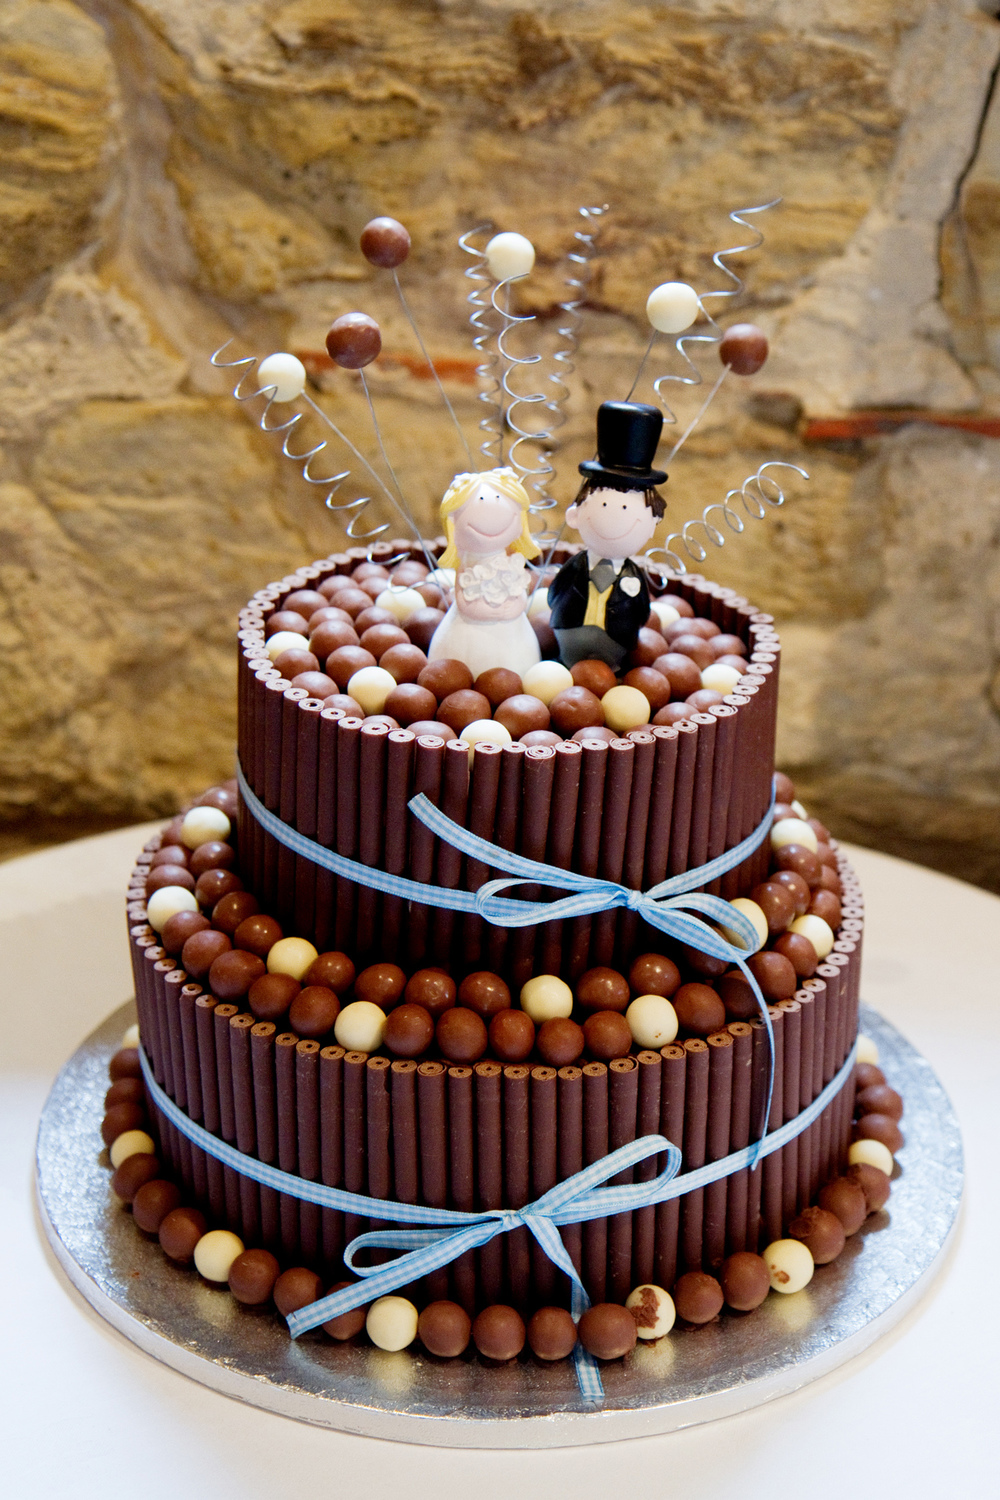 Revel Chocolate Wedding Cake, Helen England Photography, Kent, U.K